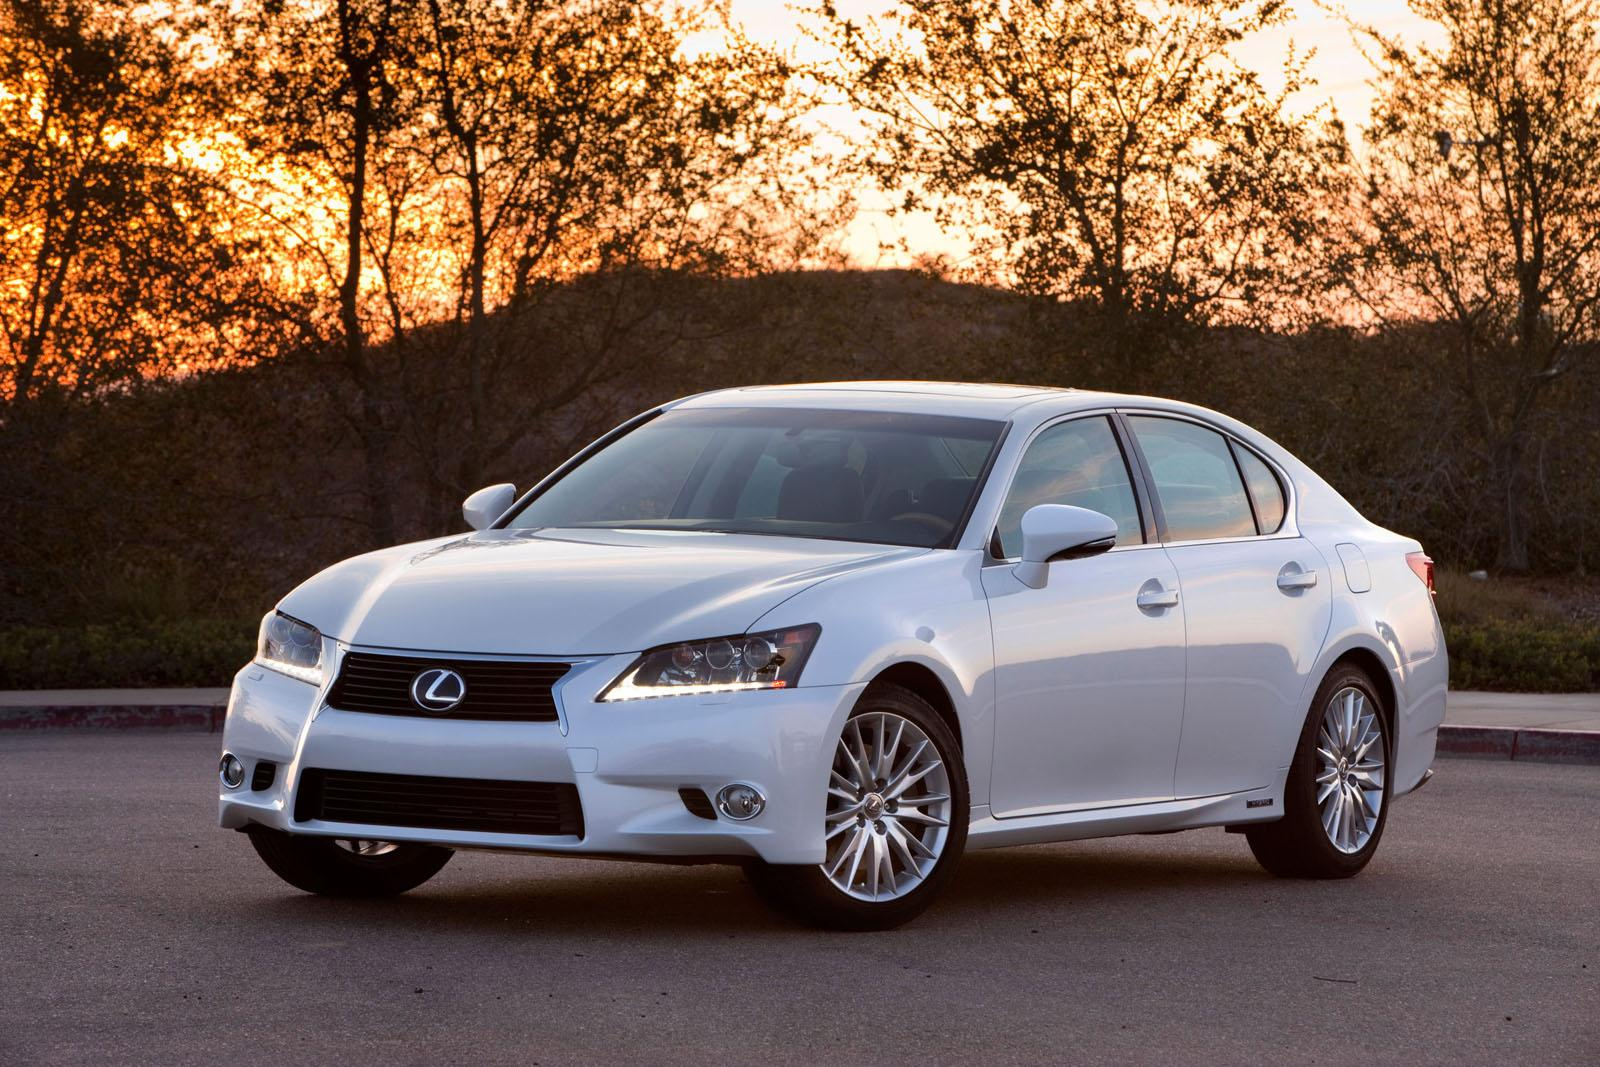 2015 lexus gs 450h adds f sport styling performance autoevolution. Black Bedroom Furniture Sets. Home Design Ideas